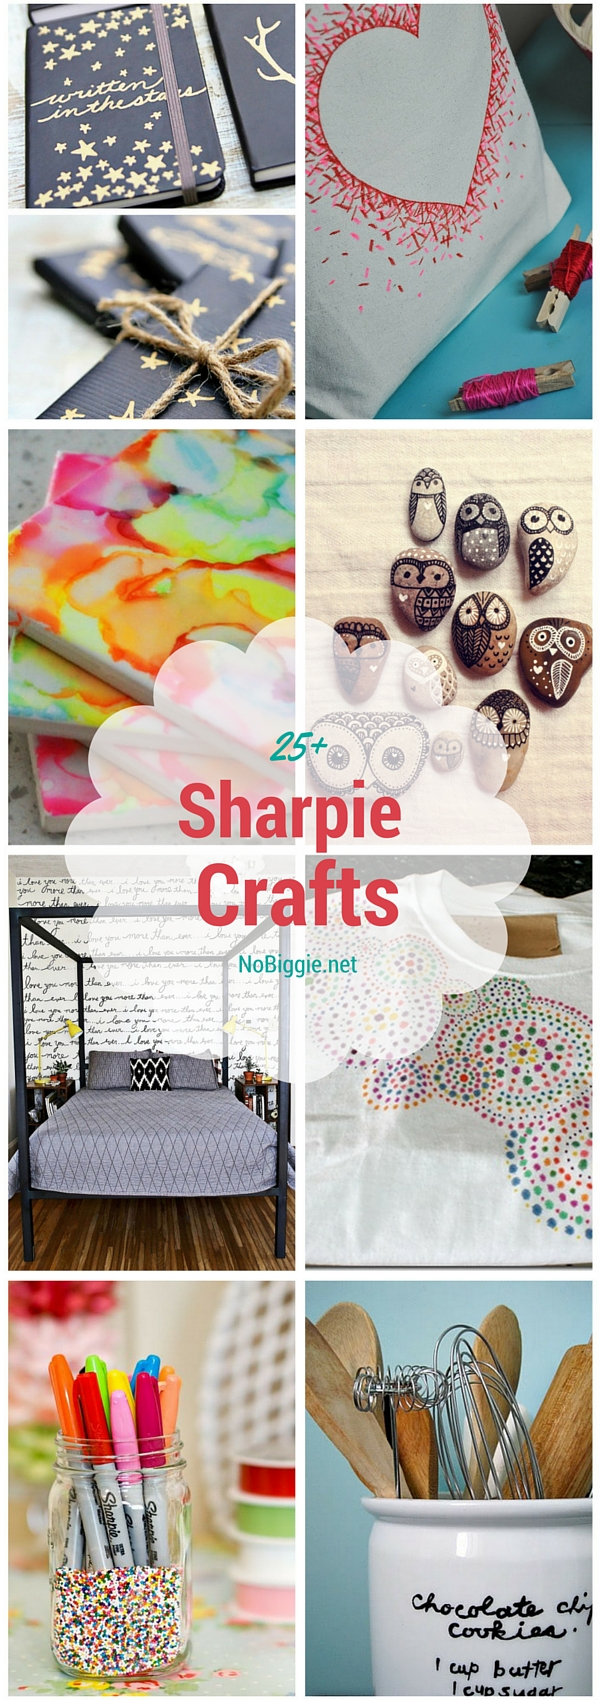 http://www.nobiggie.net/wp-content/uploads/2016/03/25-Sharpie-crafts.jpg